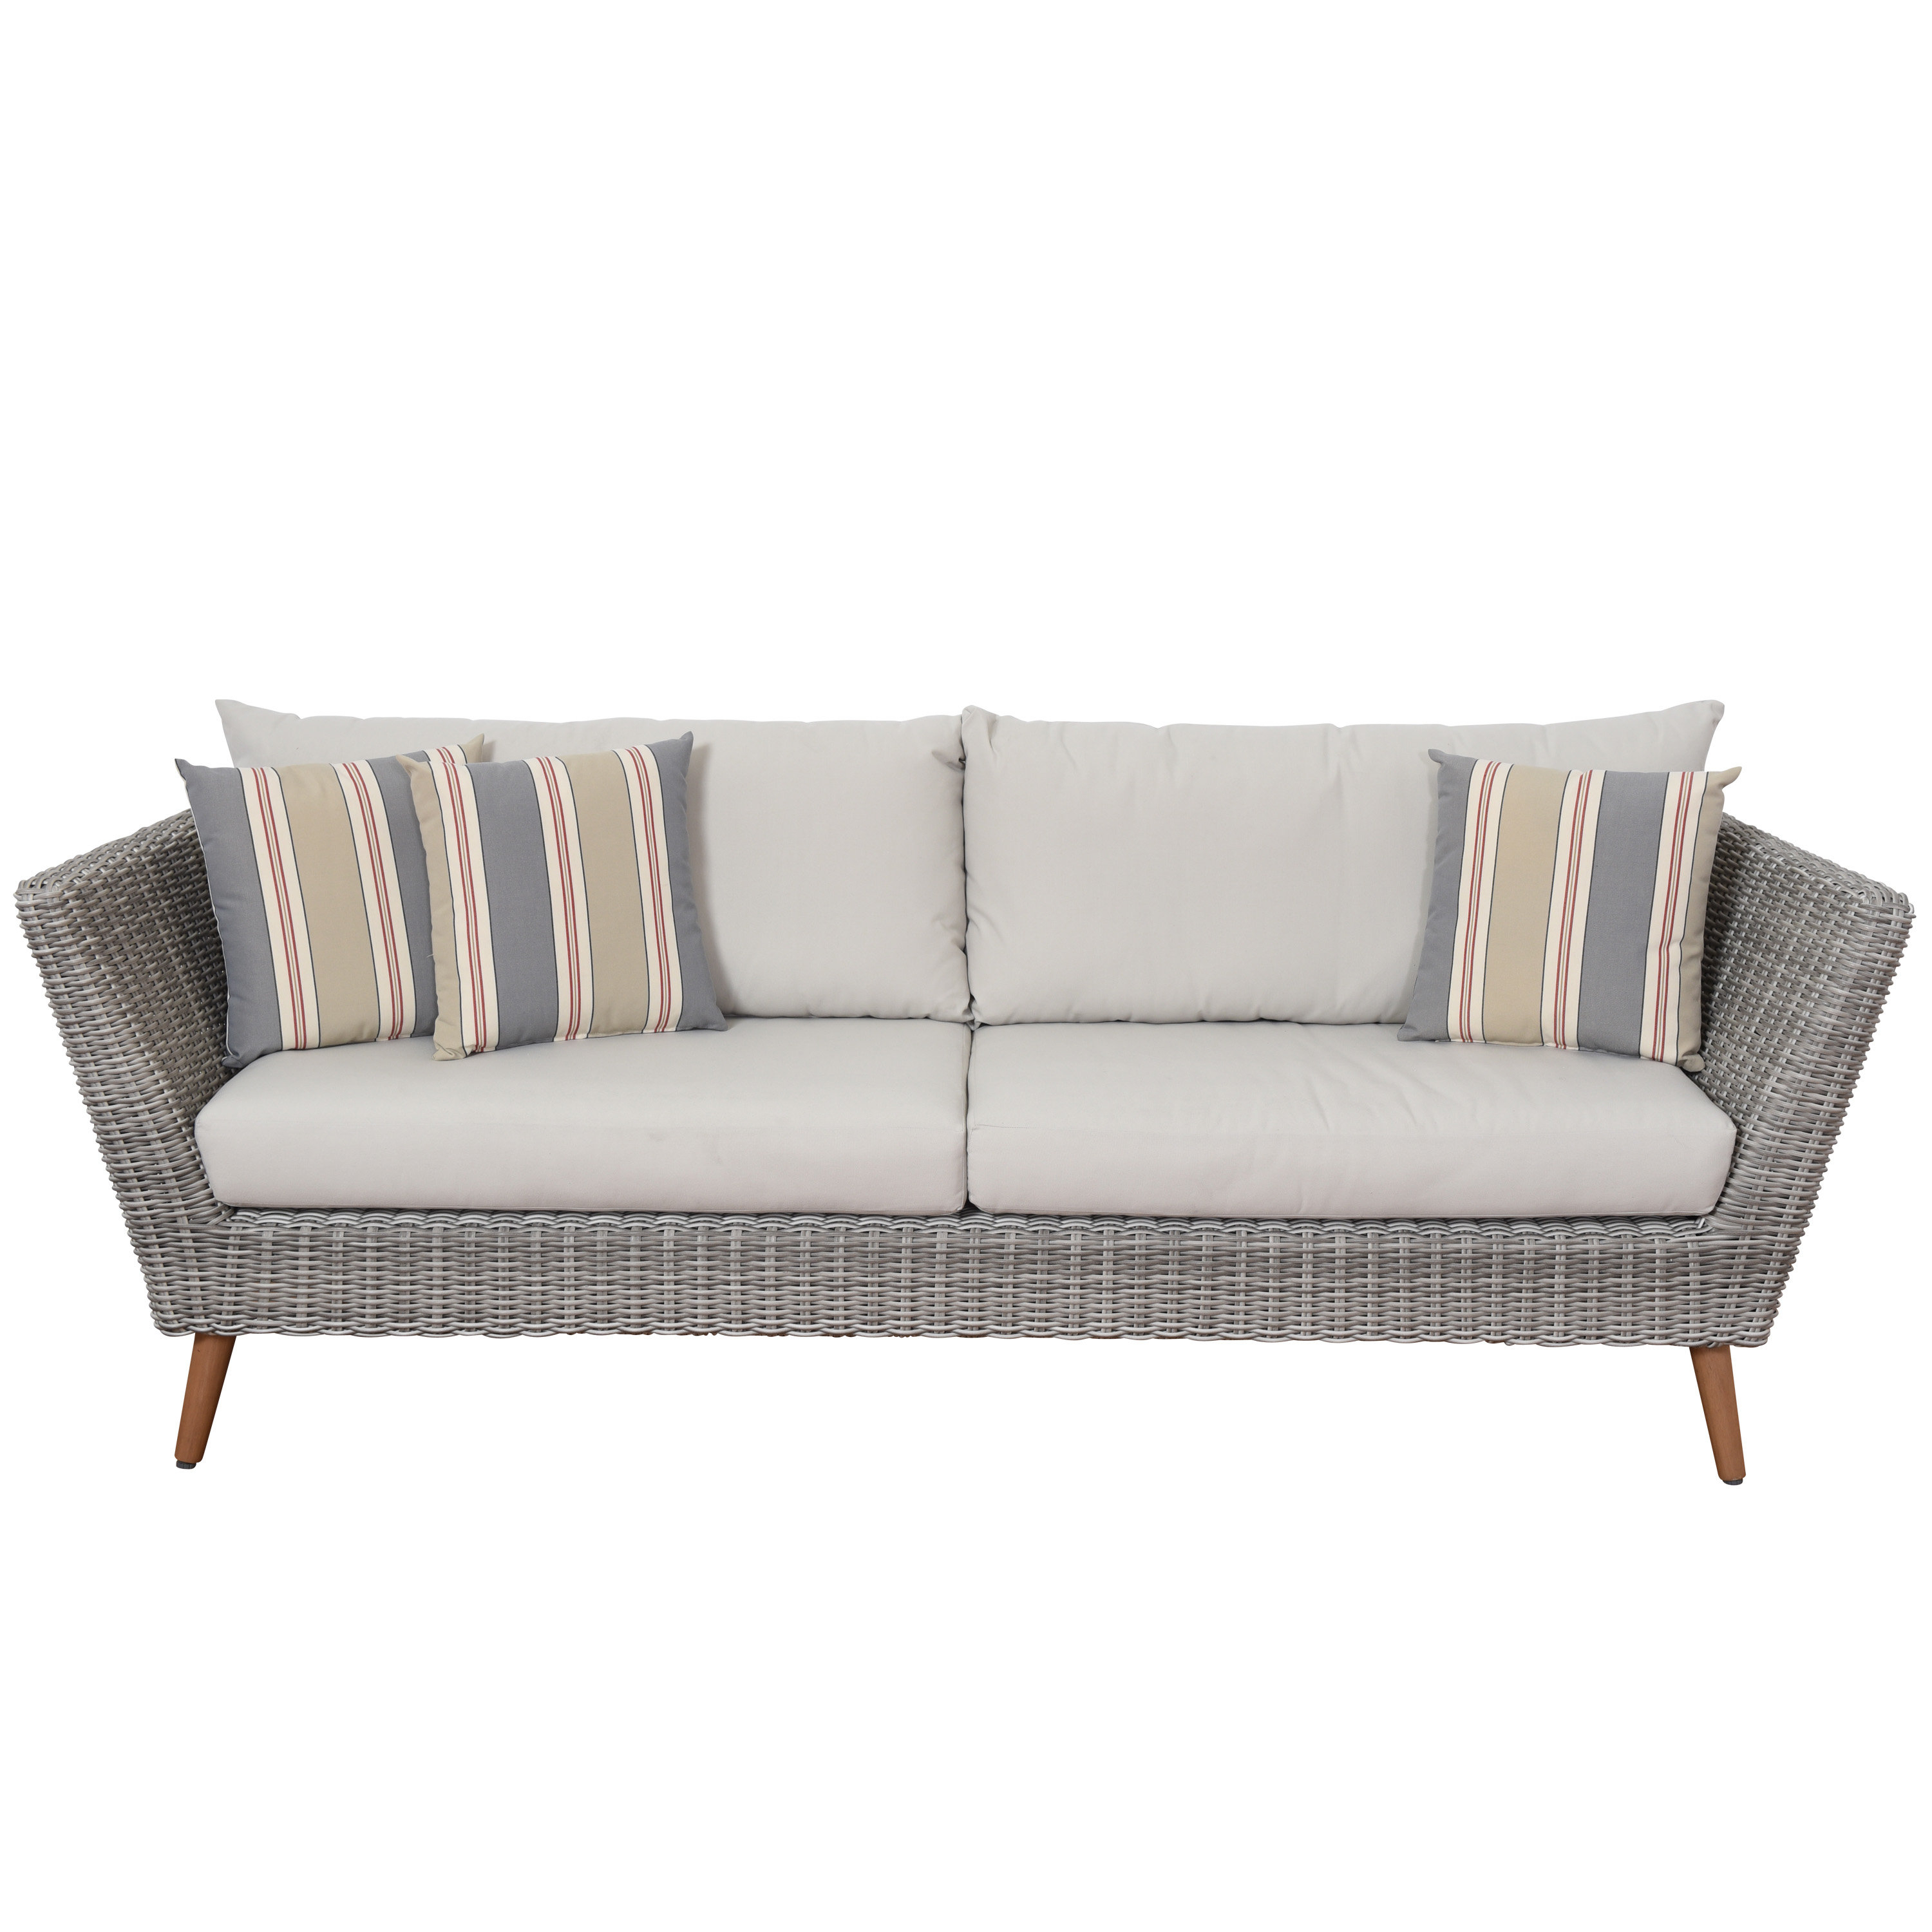 Newbury Patio Sofa With Cushions Intended For Well Known Newbury Patio Sofas With Cushions (View 13 of 20)